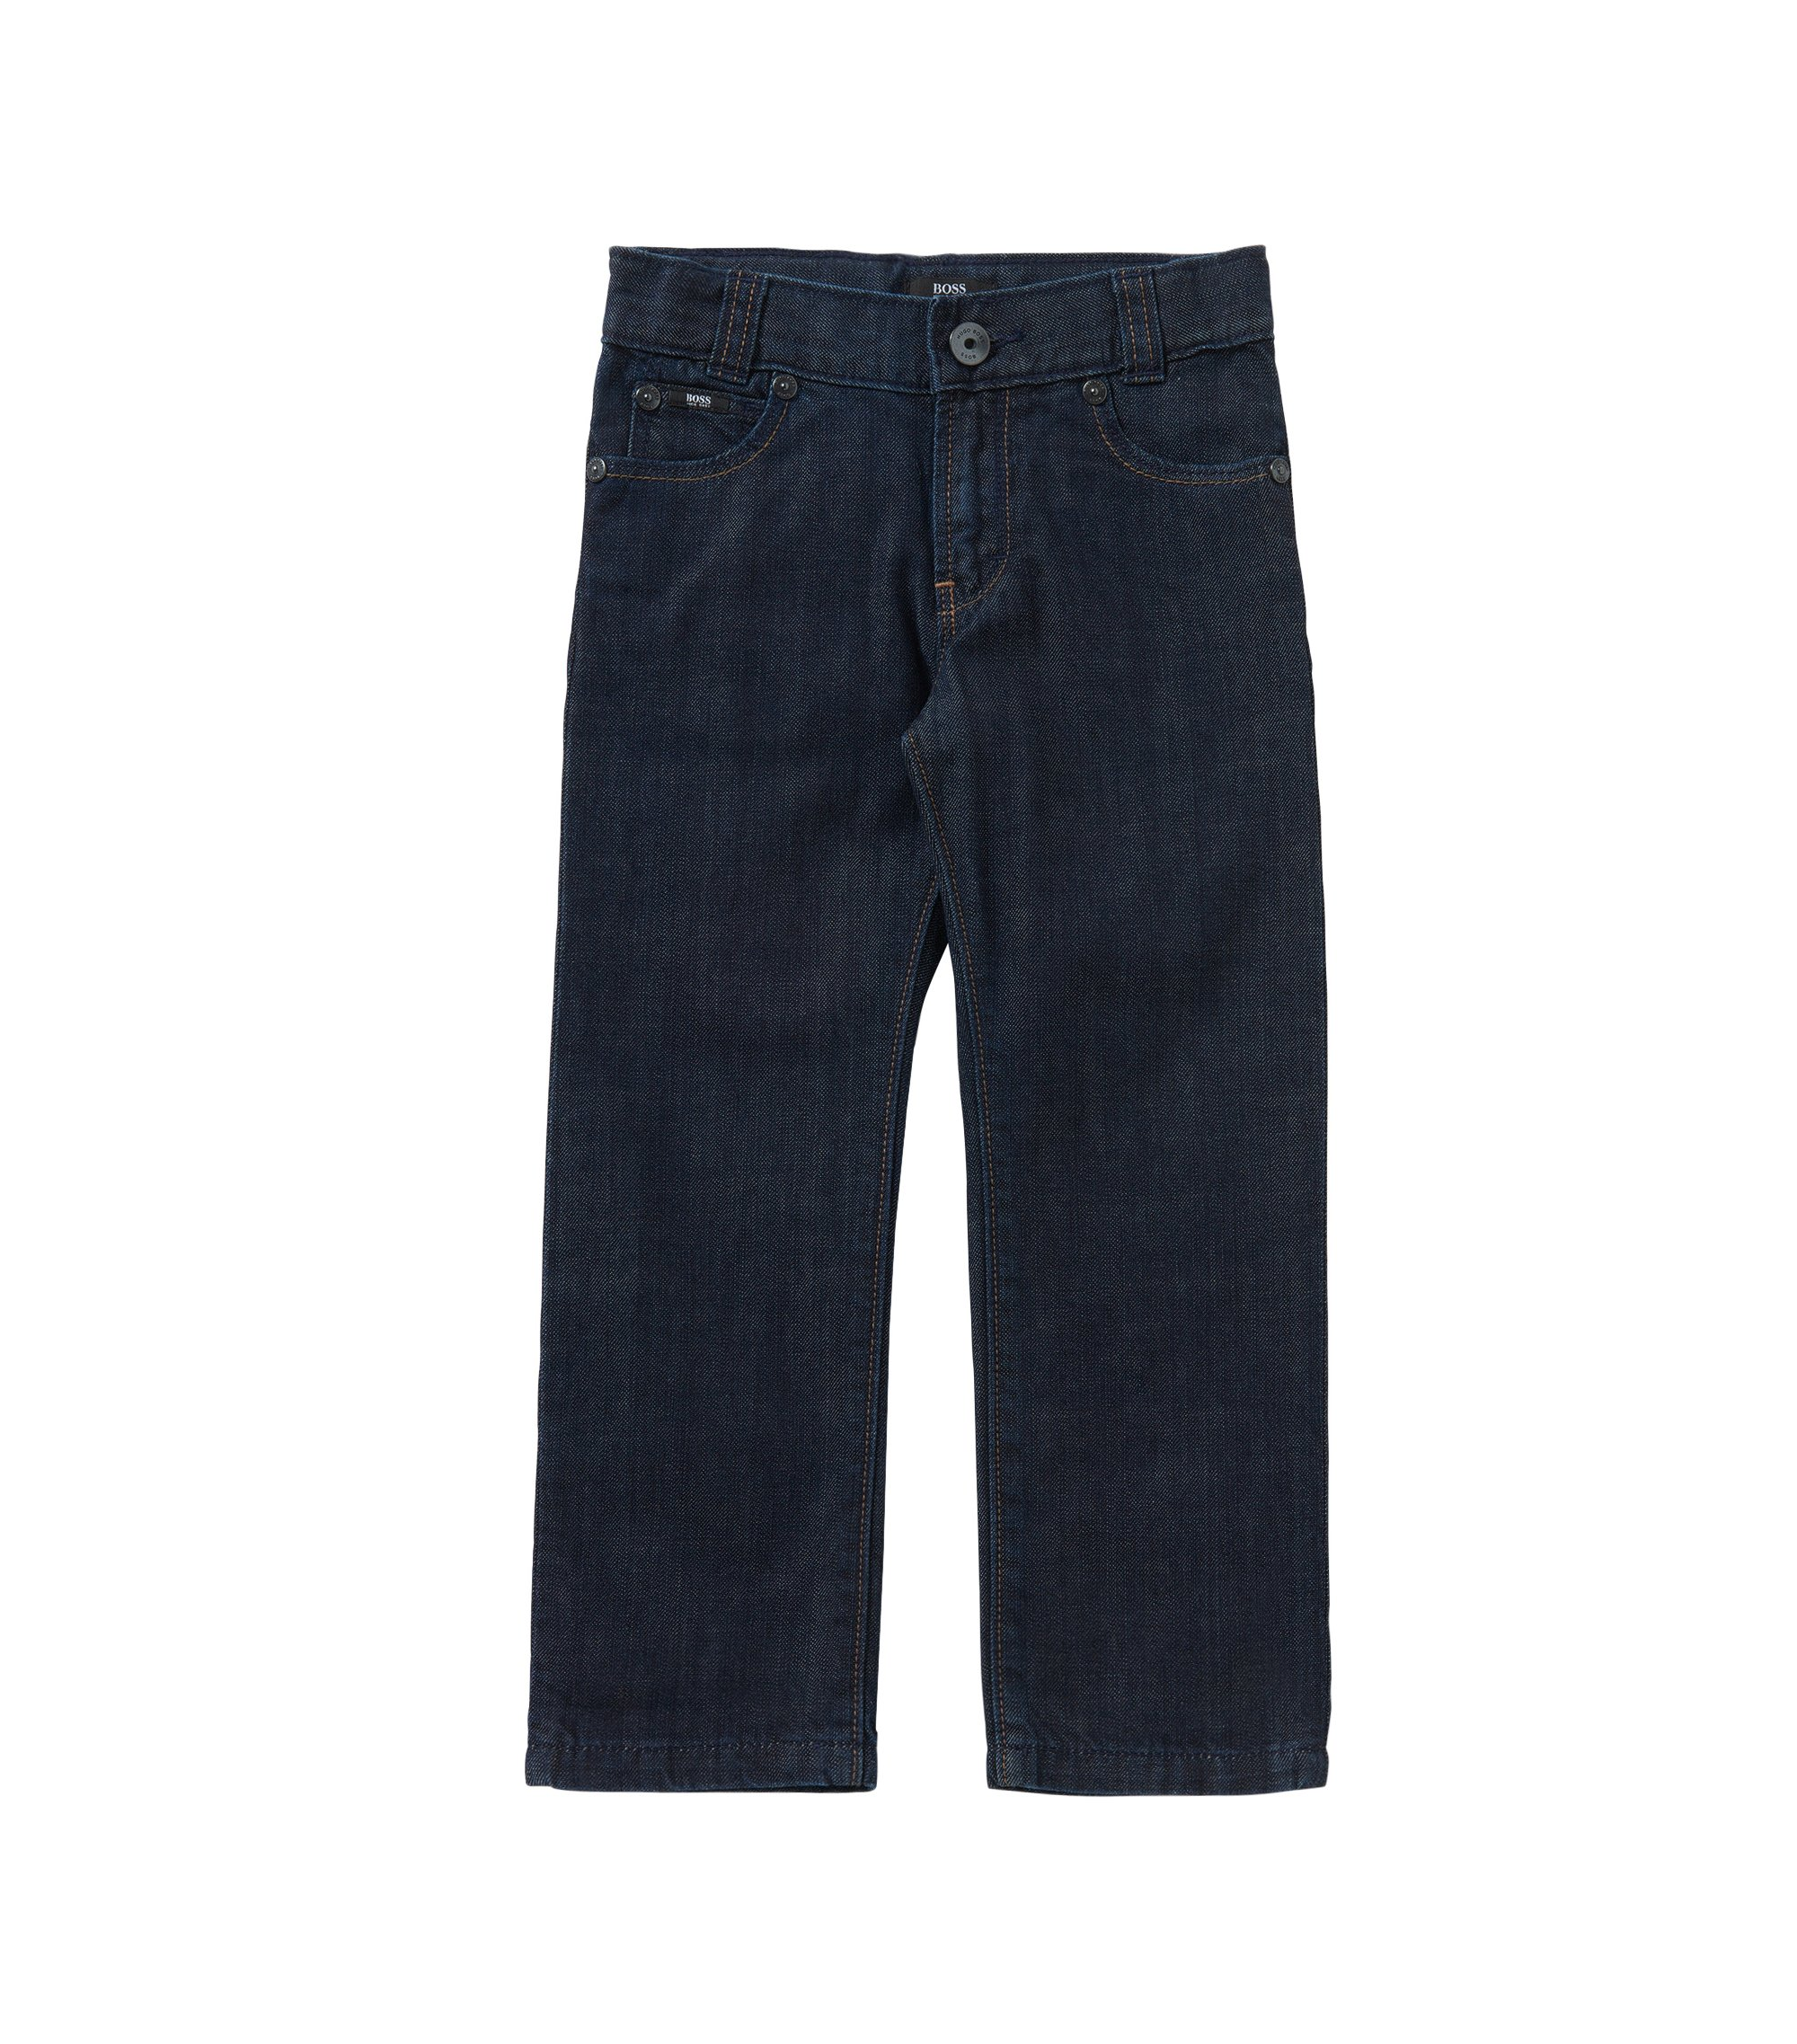 'Alabama' | Boys Cotton Jeans, Patterned